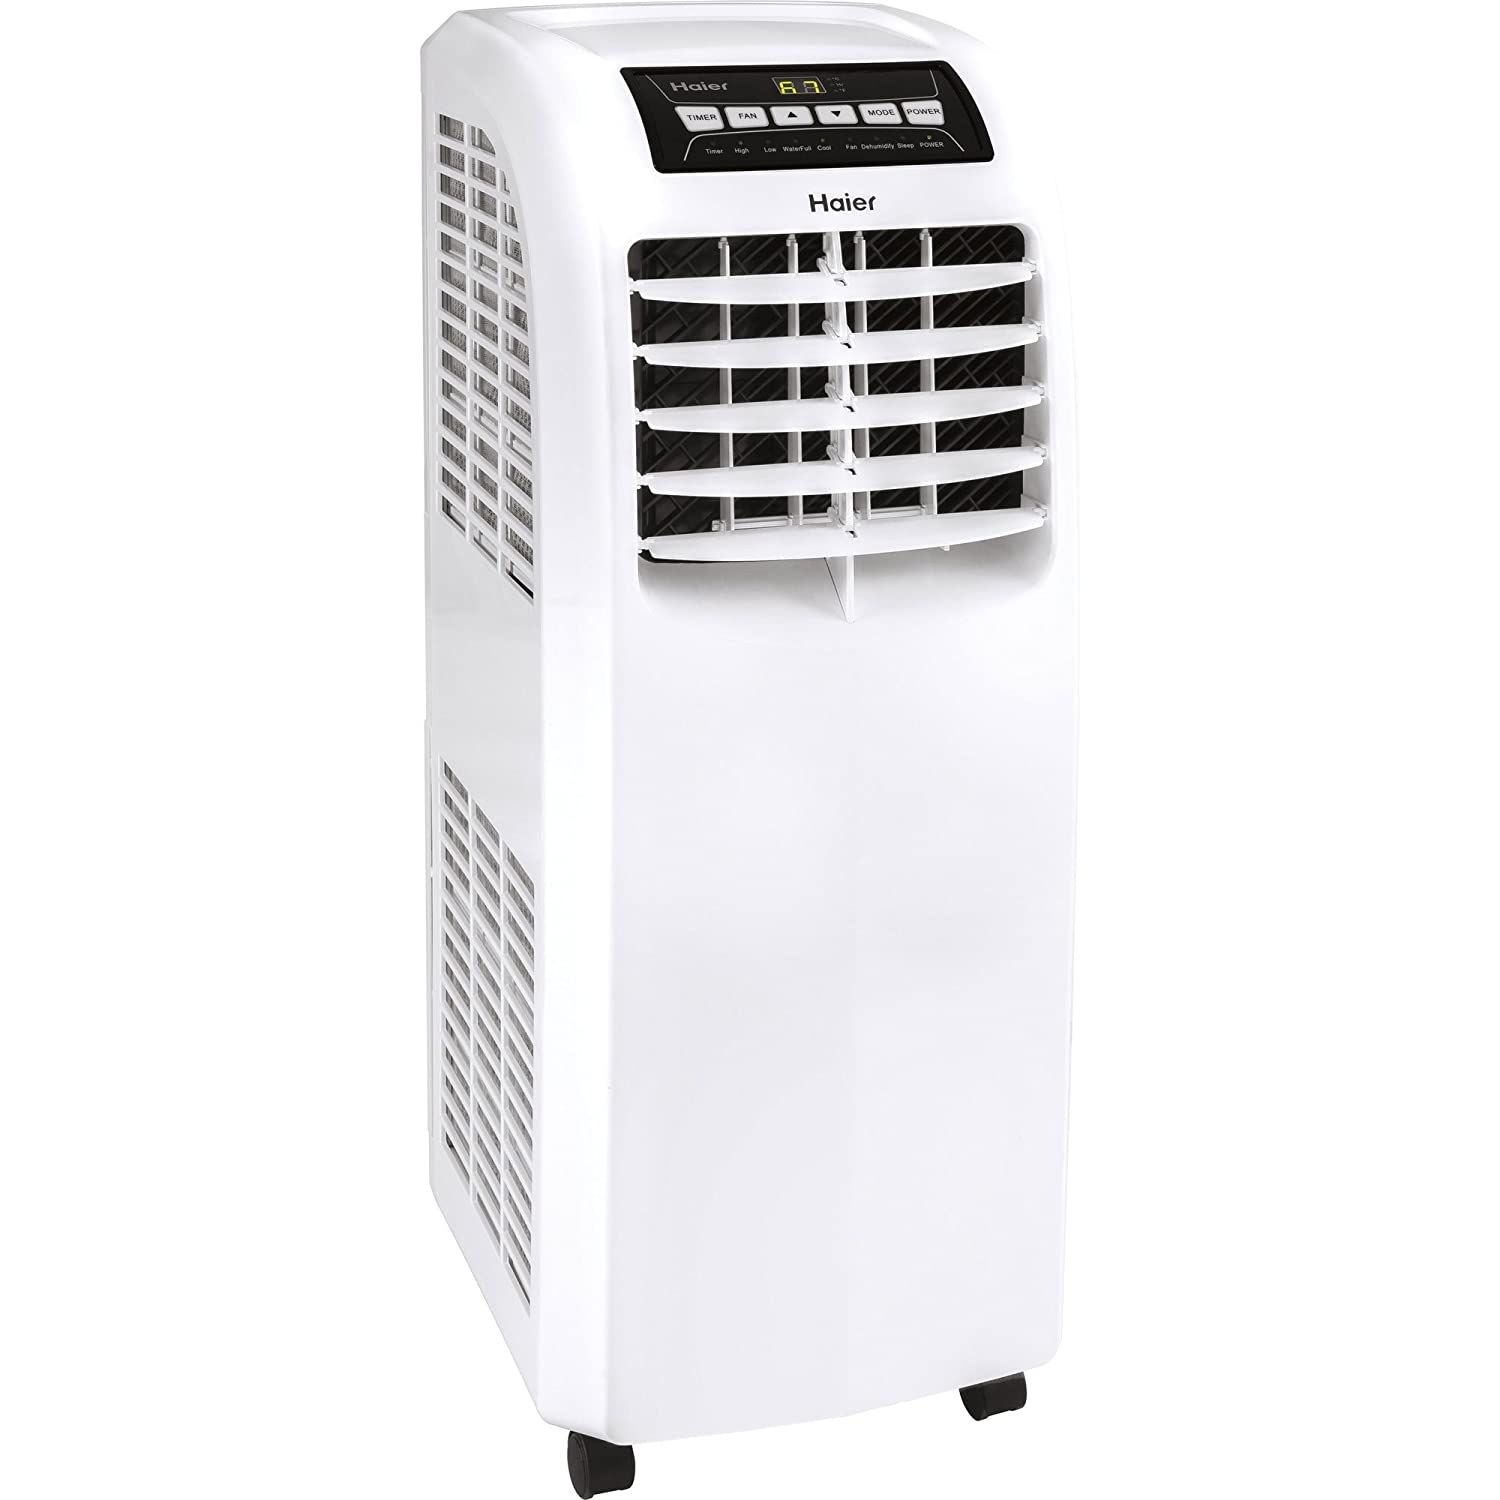 Haier QPCD05AXMW 2 Fan Sd Remote Control Portable Air Conditioner, on